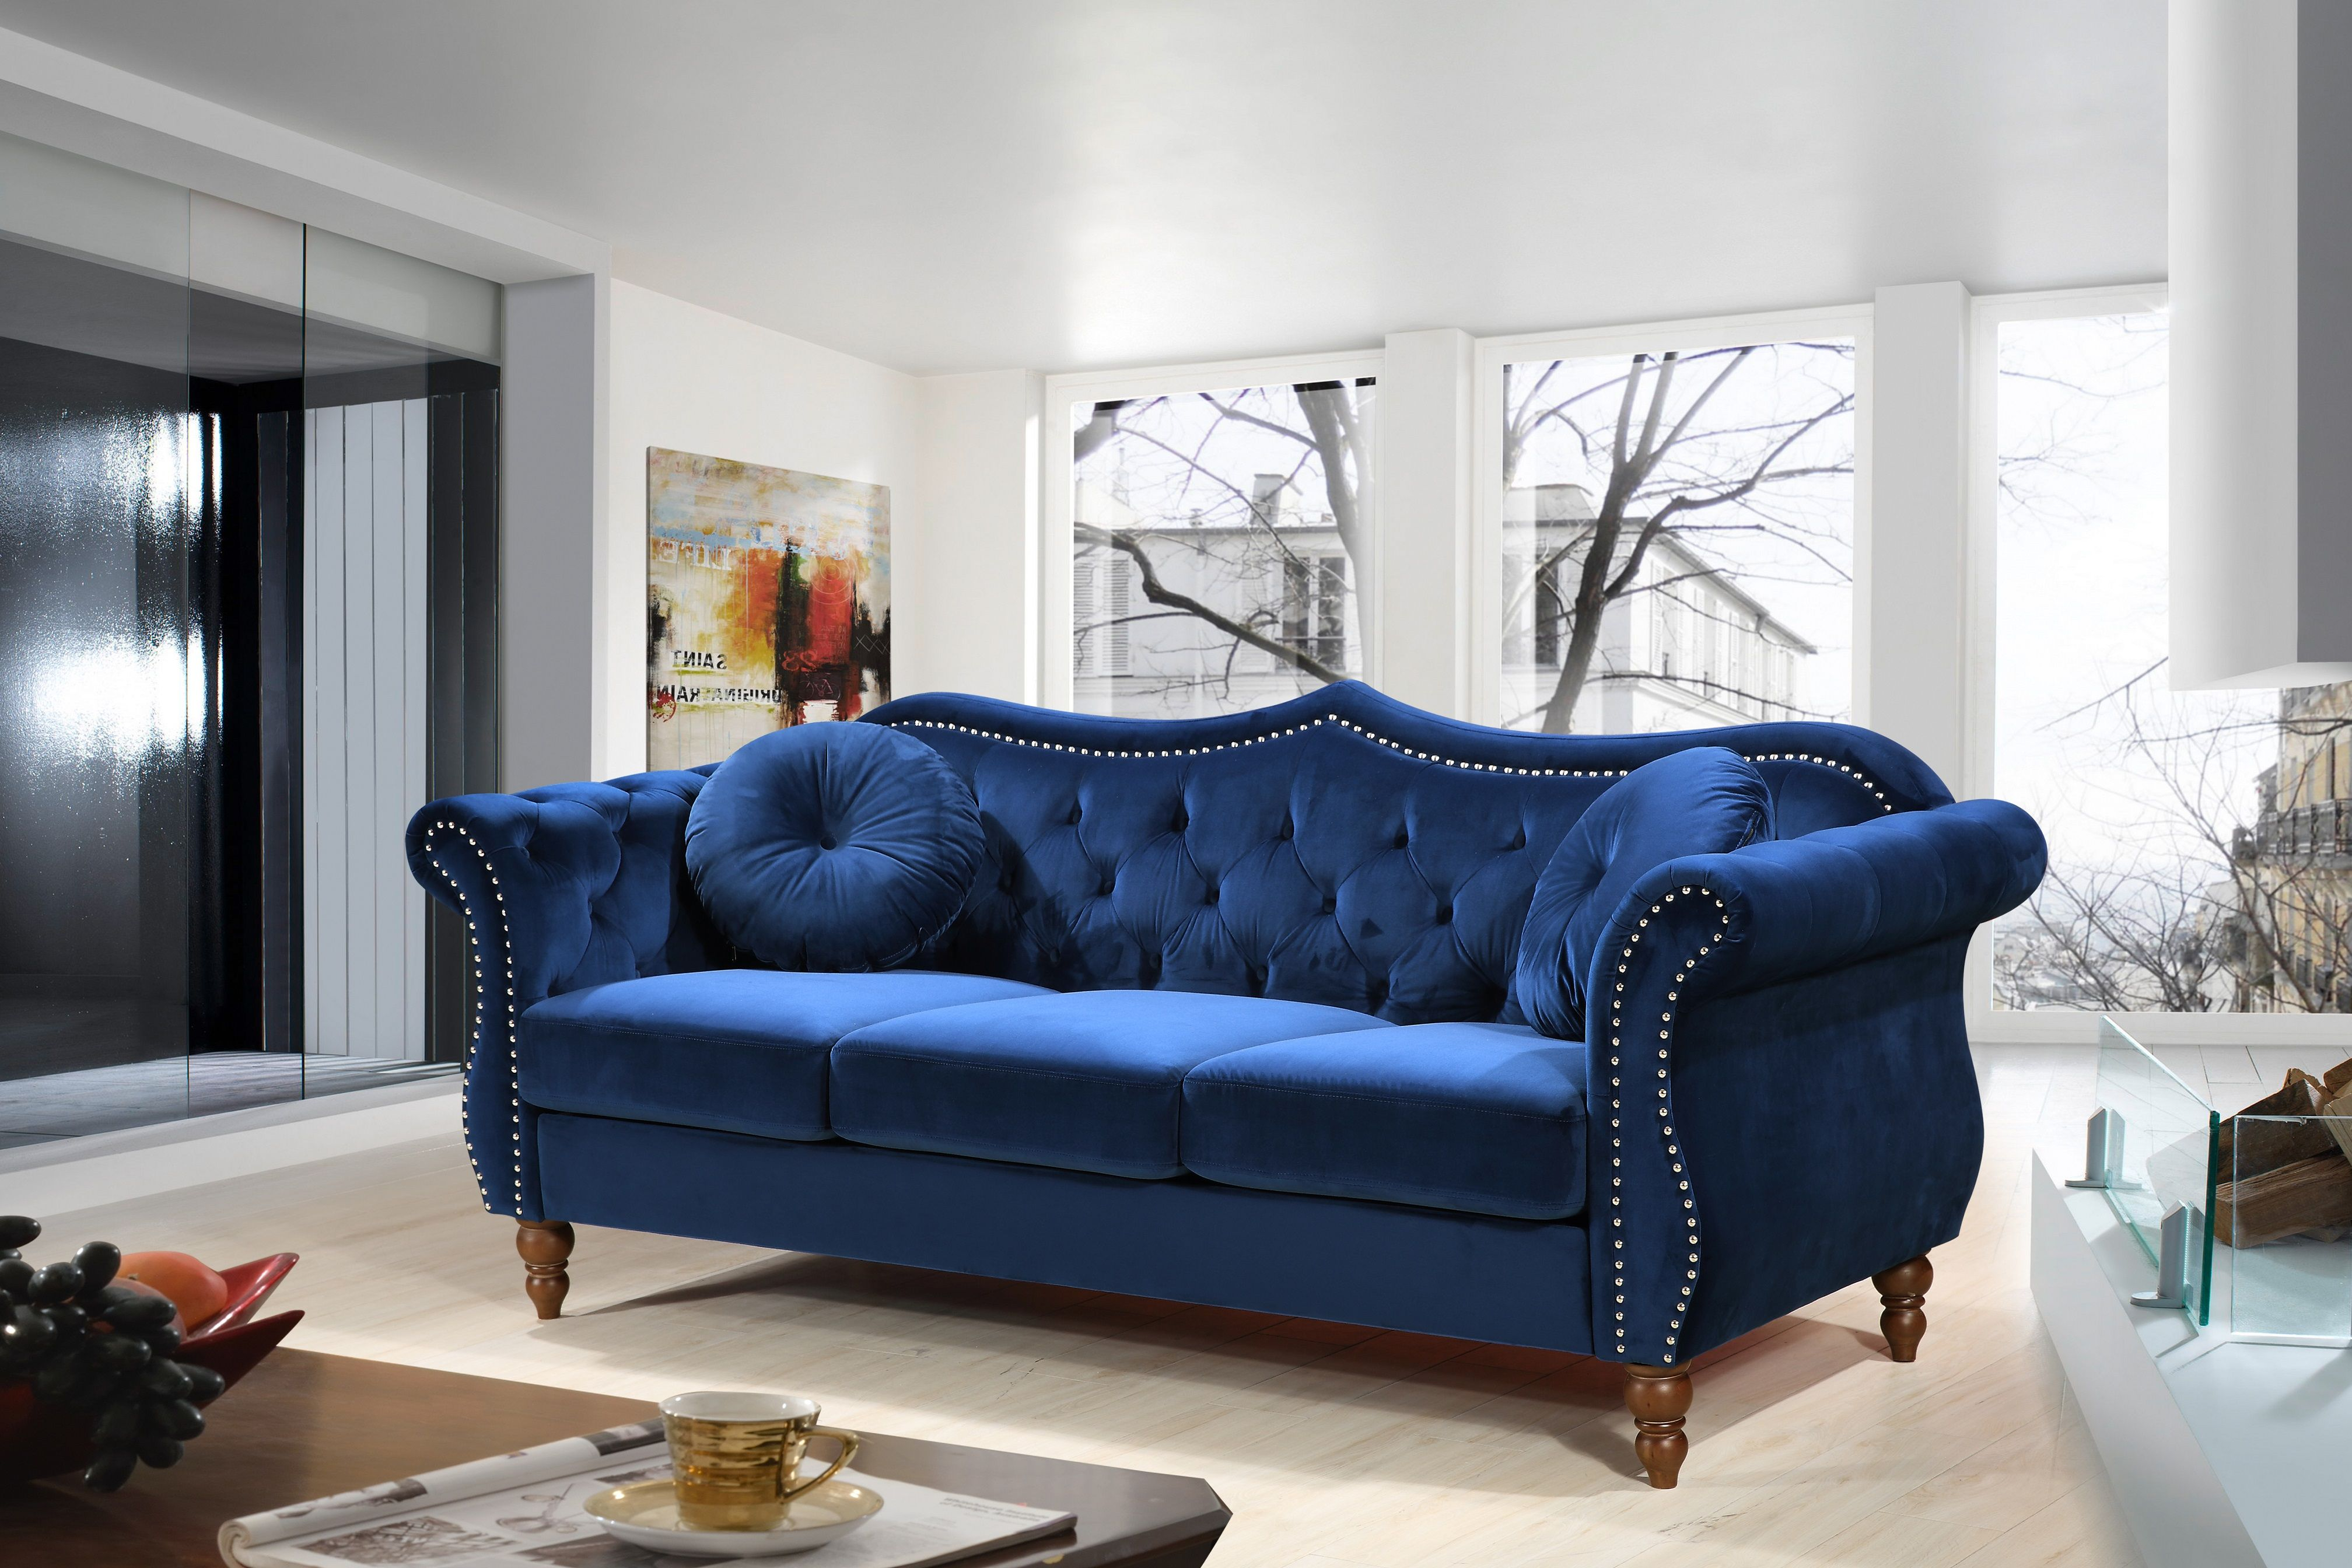 Us Pride Furniture Carbon Classic Nail Head Chesterfield Living Room Sofa Blue Walmart Com In 2021 Blue Sofas Living Room Blue Living Room Decor Chesterfield Living Room